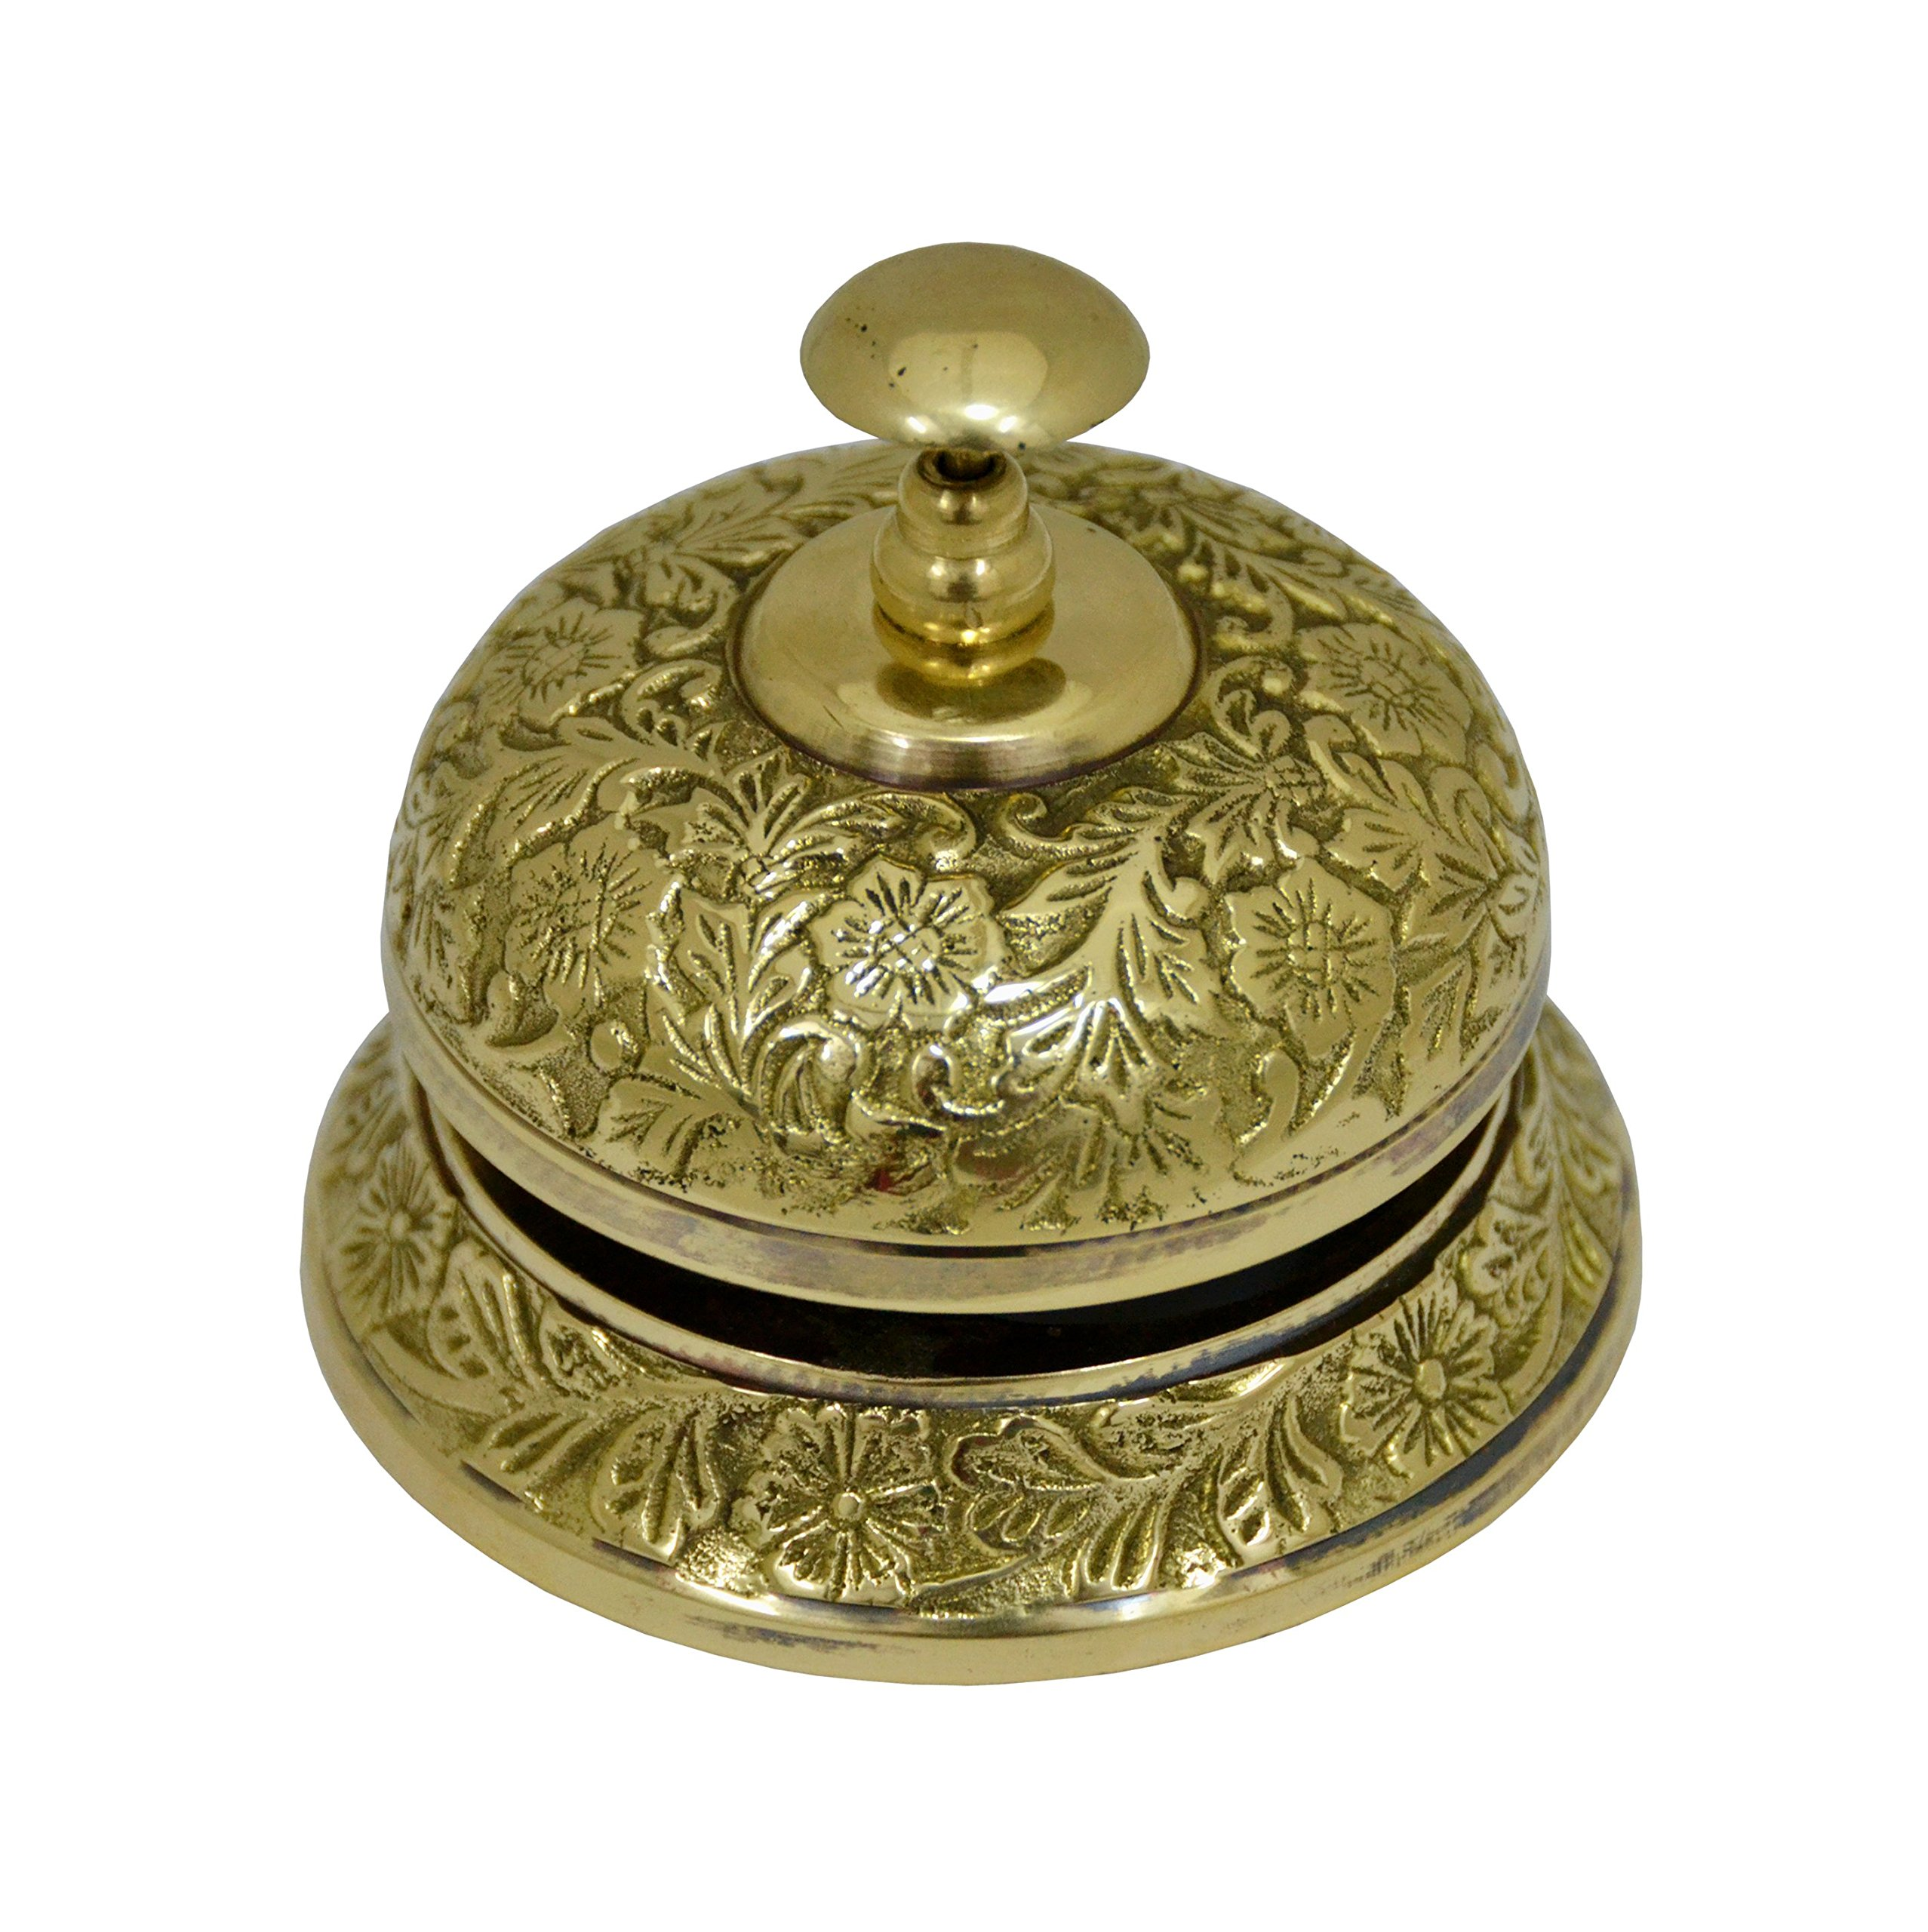 Brass Nautical Brass Ornate Service Desk Bell Hotel Counter Bell - 3.75 inches